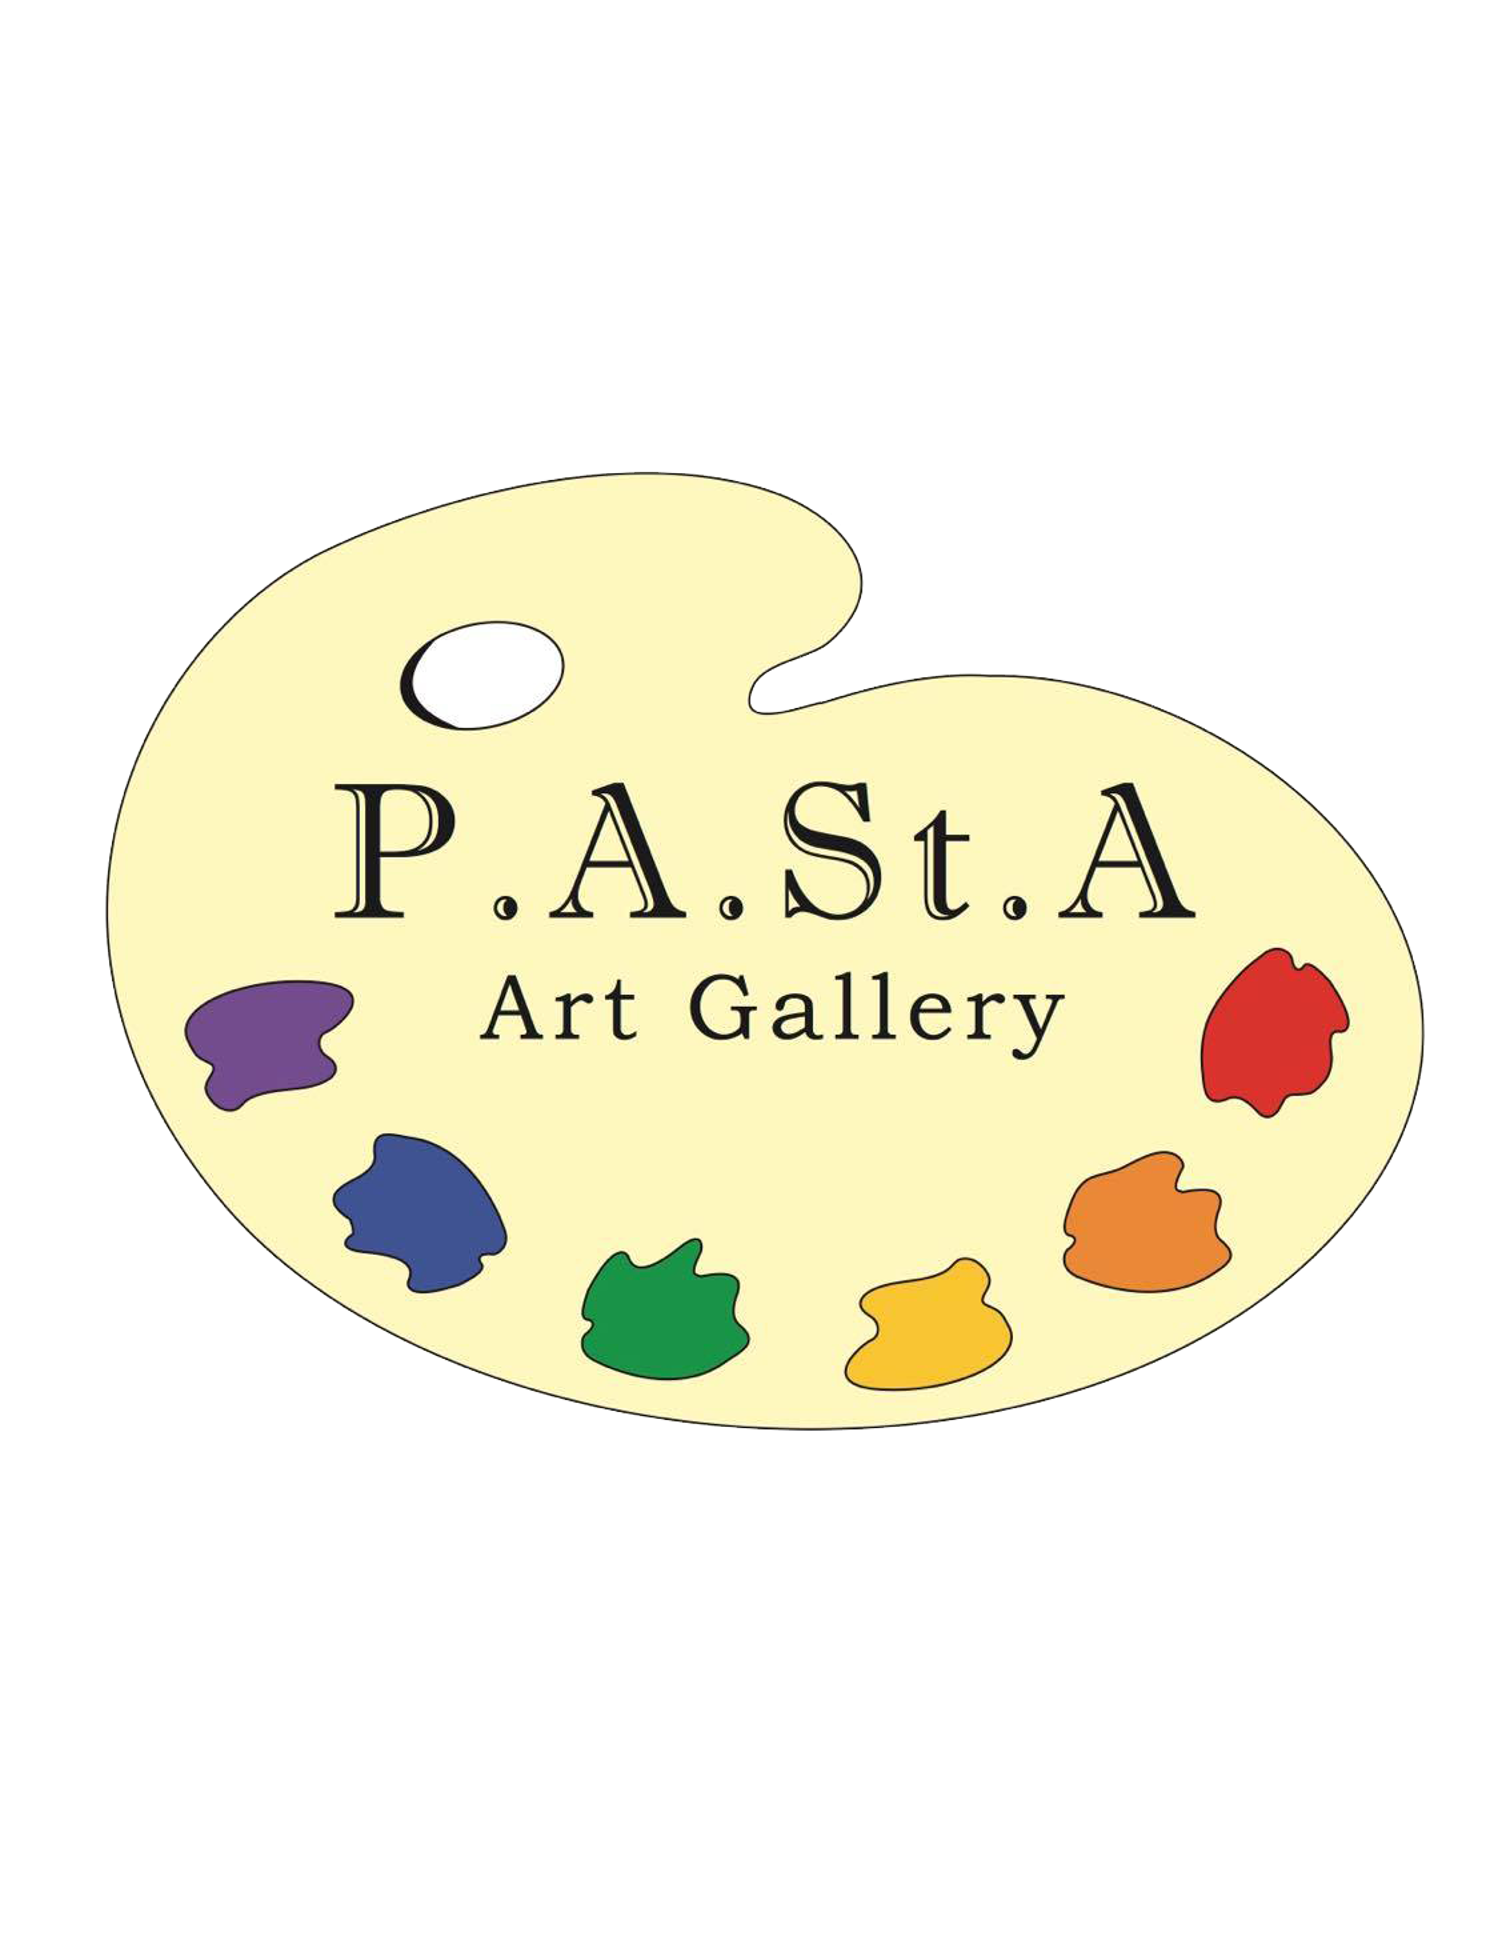 P.A.St.A (Professional Artists of St. Augtustine)